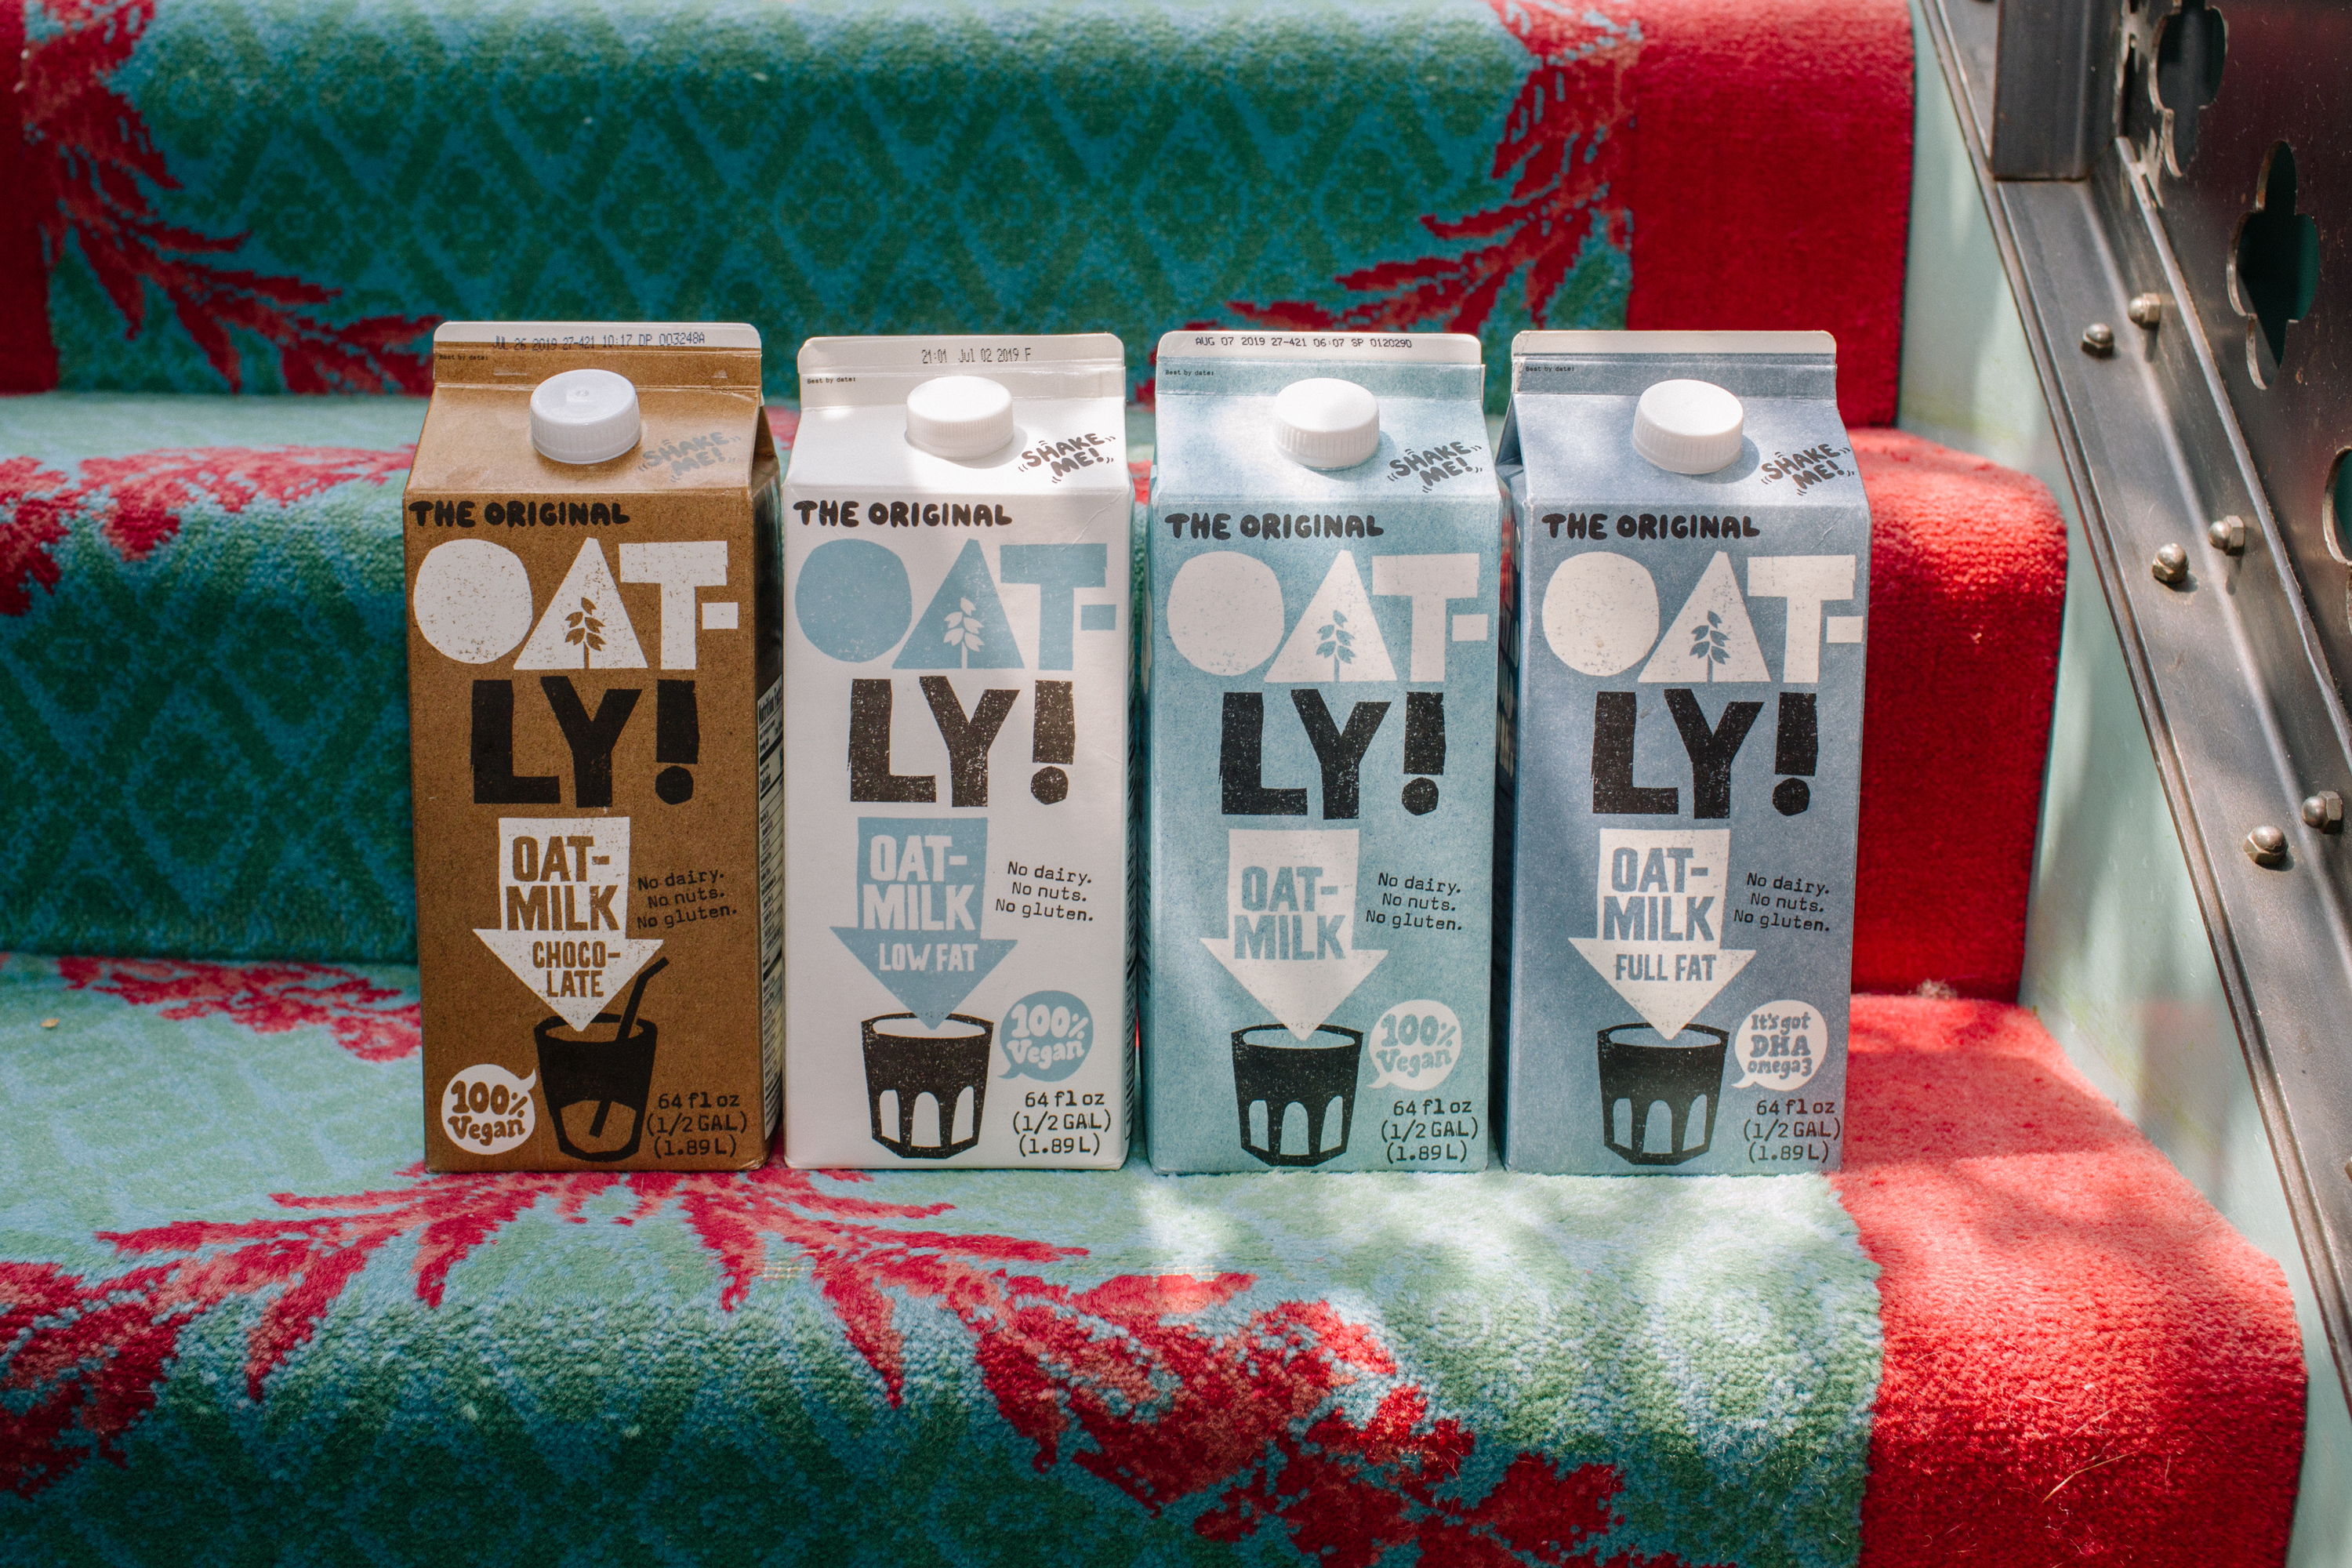 How oat milk became a must-have in the age of coronavirus